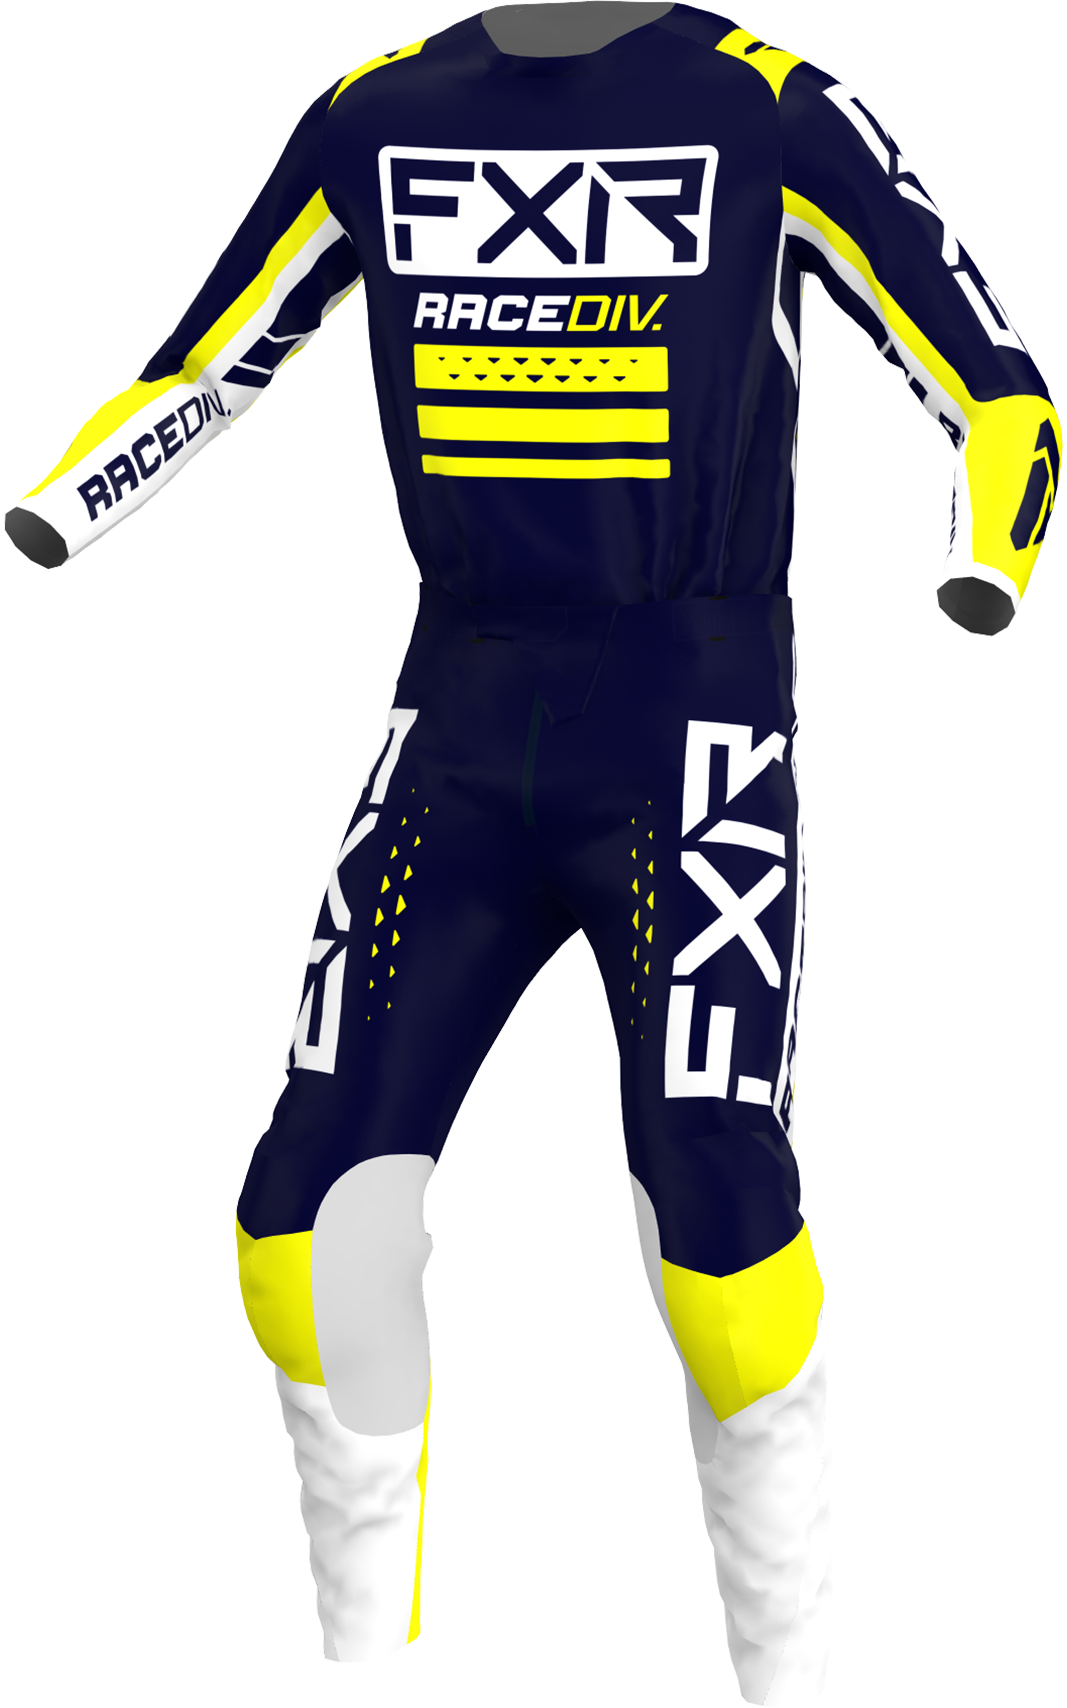 A 3D image of FXR's Clutch Pro MX Jersey and Pant 22 in Midnight / White / Yellow colorway